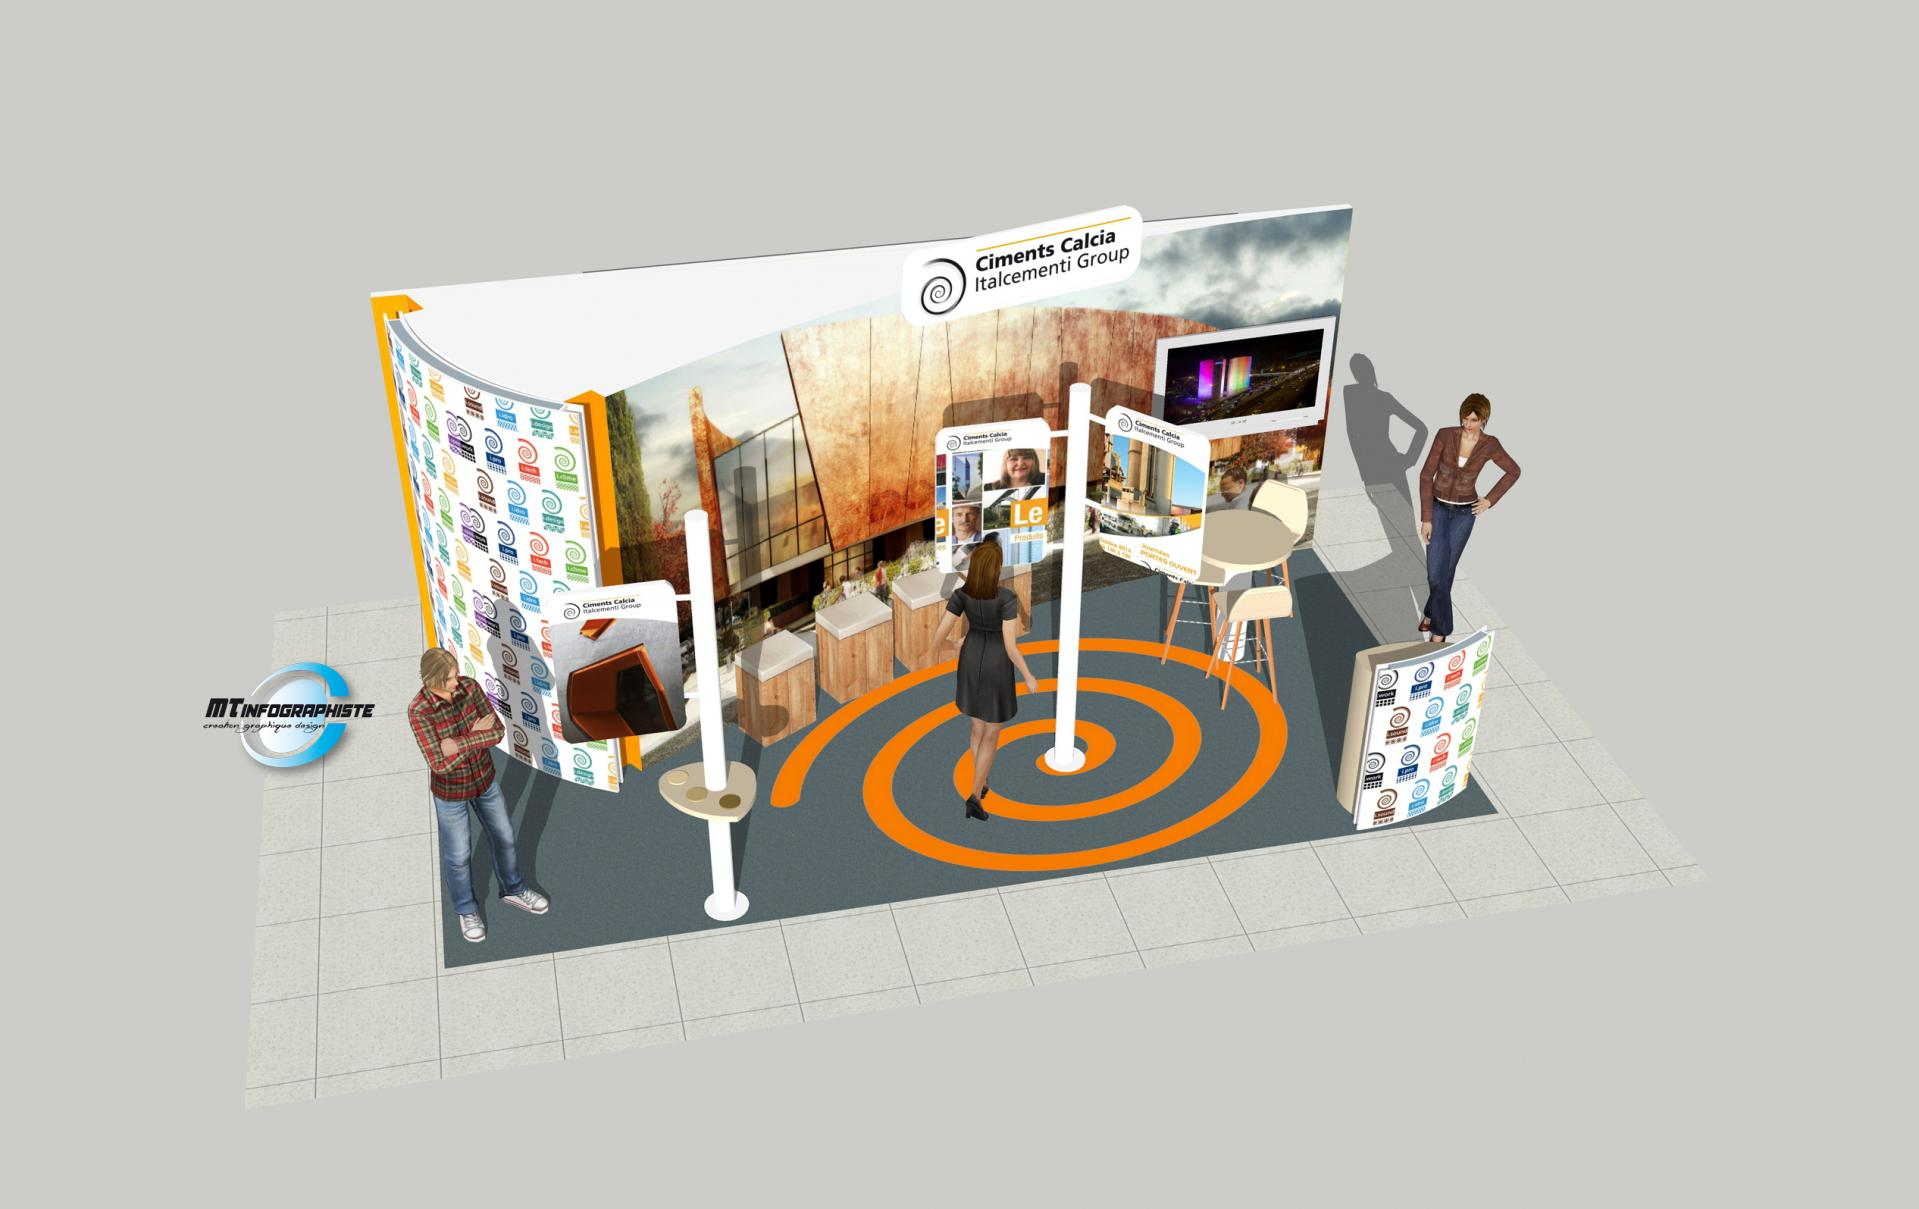 3D Stand Galcia